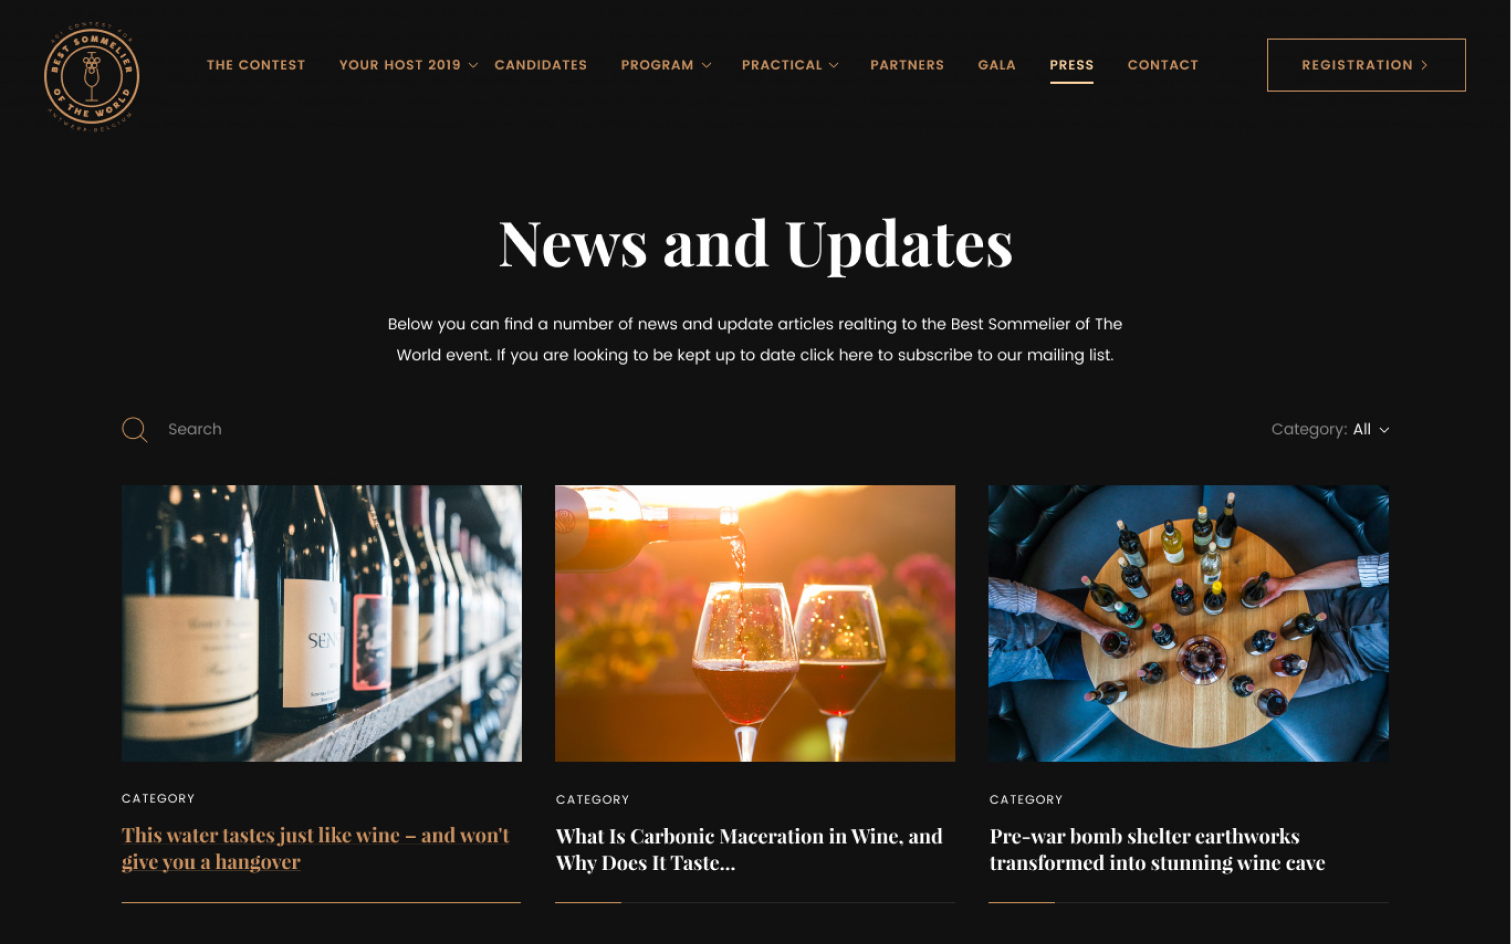 BEST SOMMELIER OF THE WORLD – News and Updates